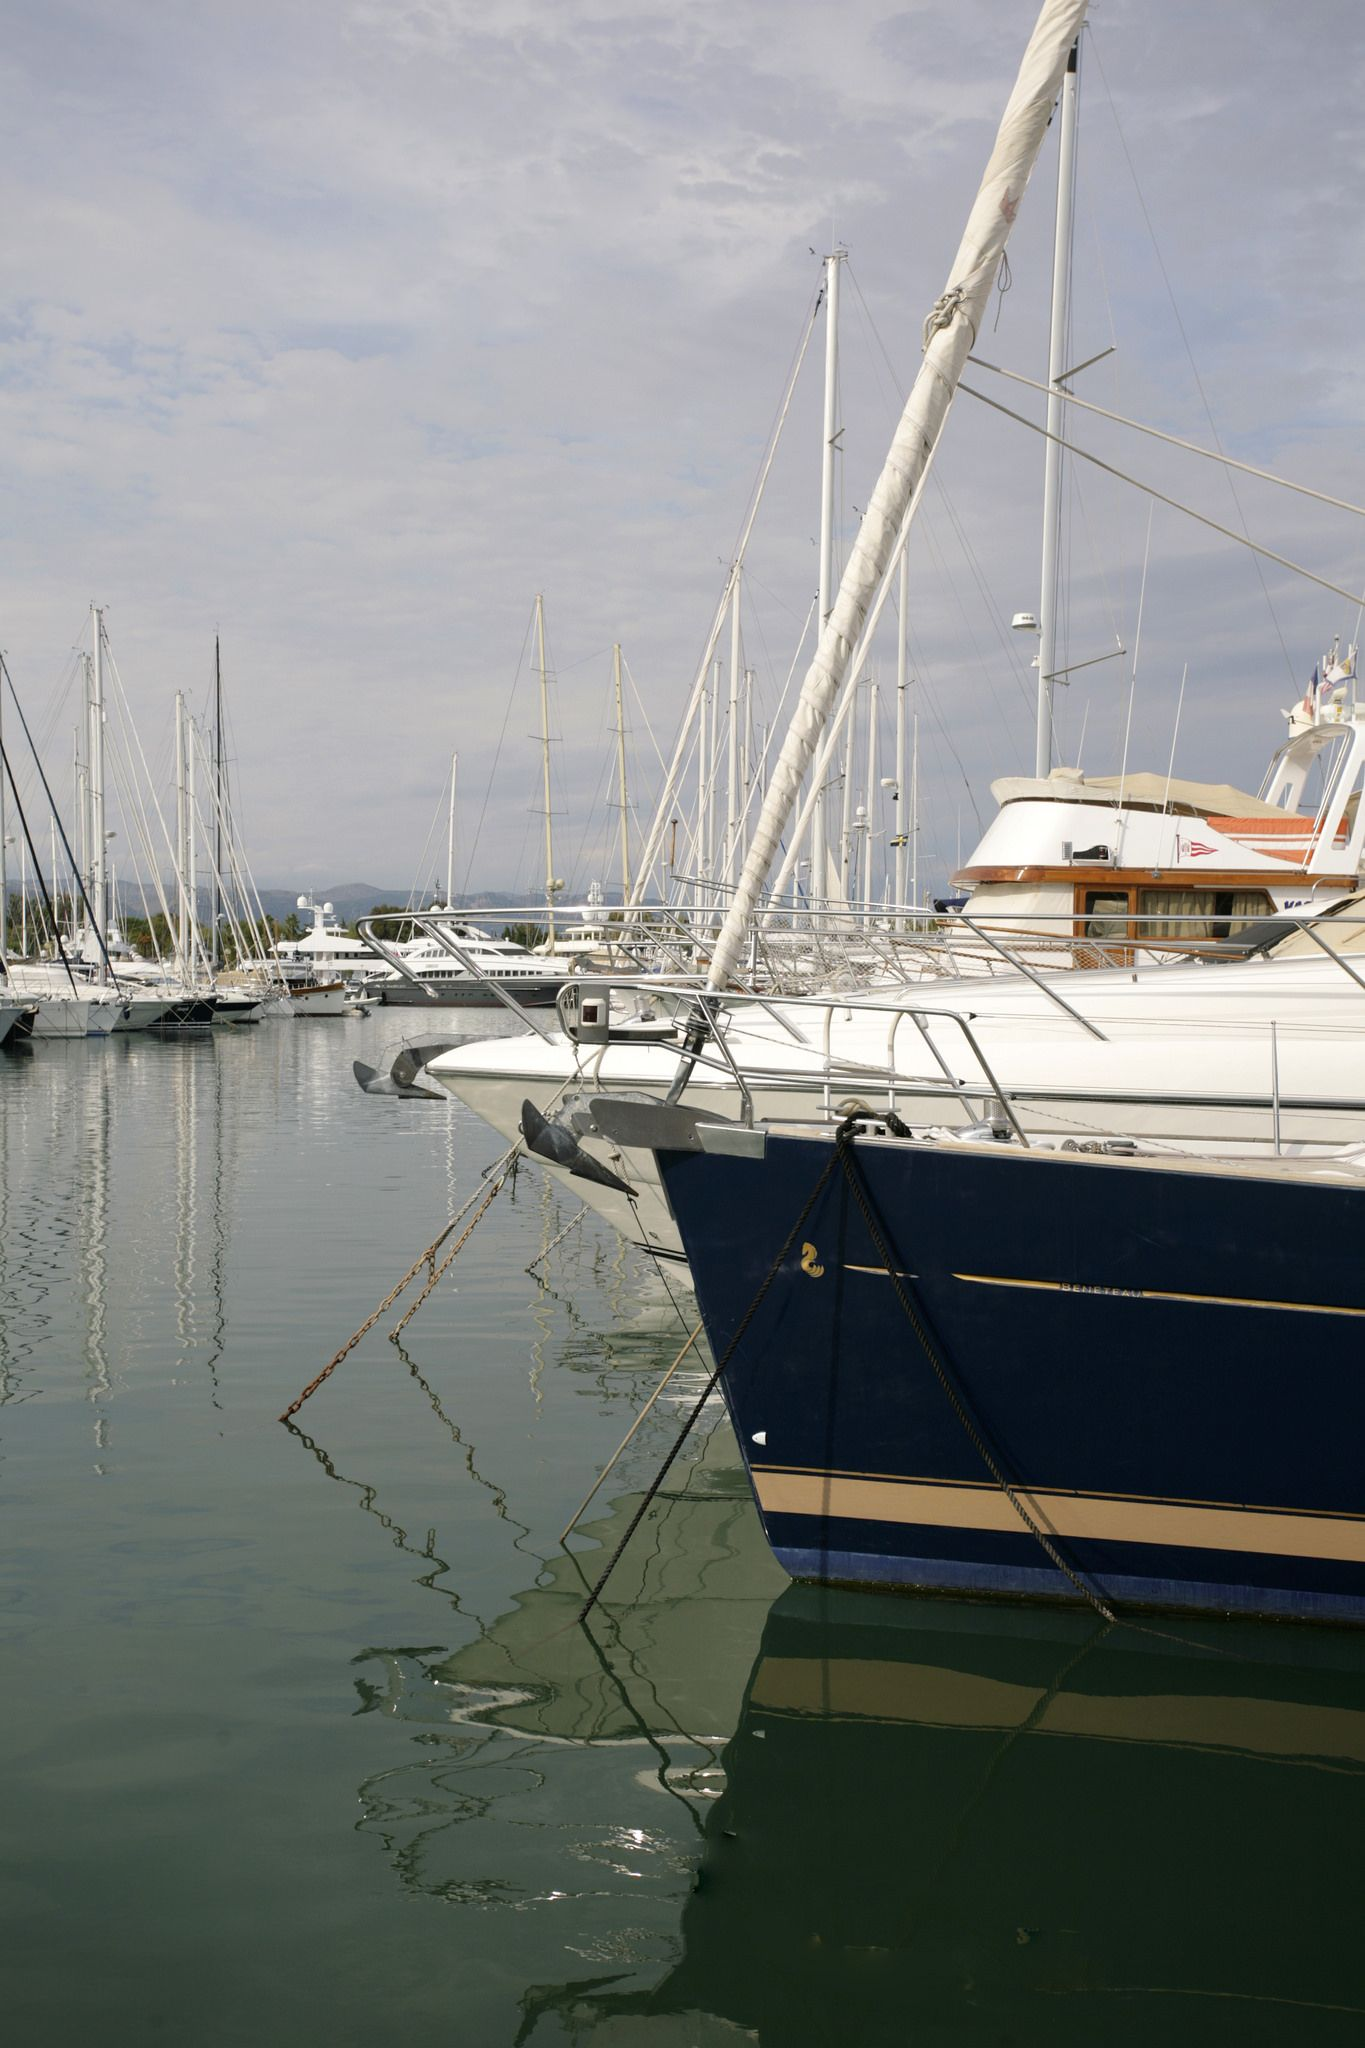 https://flic.kr/p/yViq1Z | Port Vauban | Antibes harbour France - the light was just perfect.. www.adamswaine.co.uk